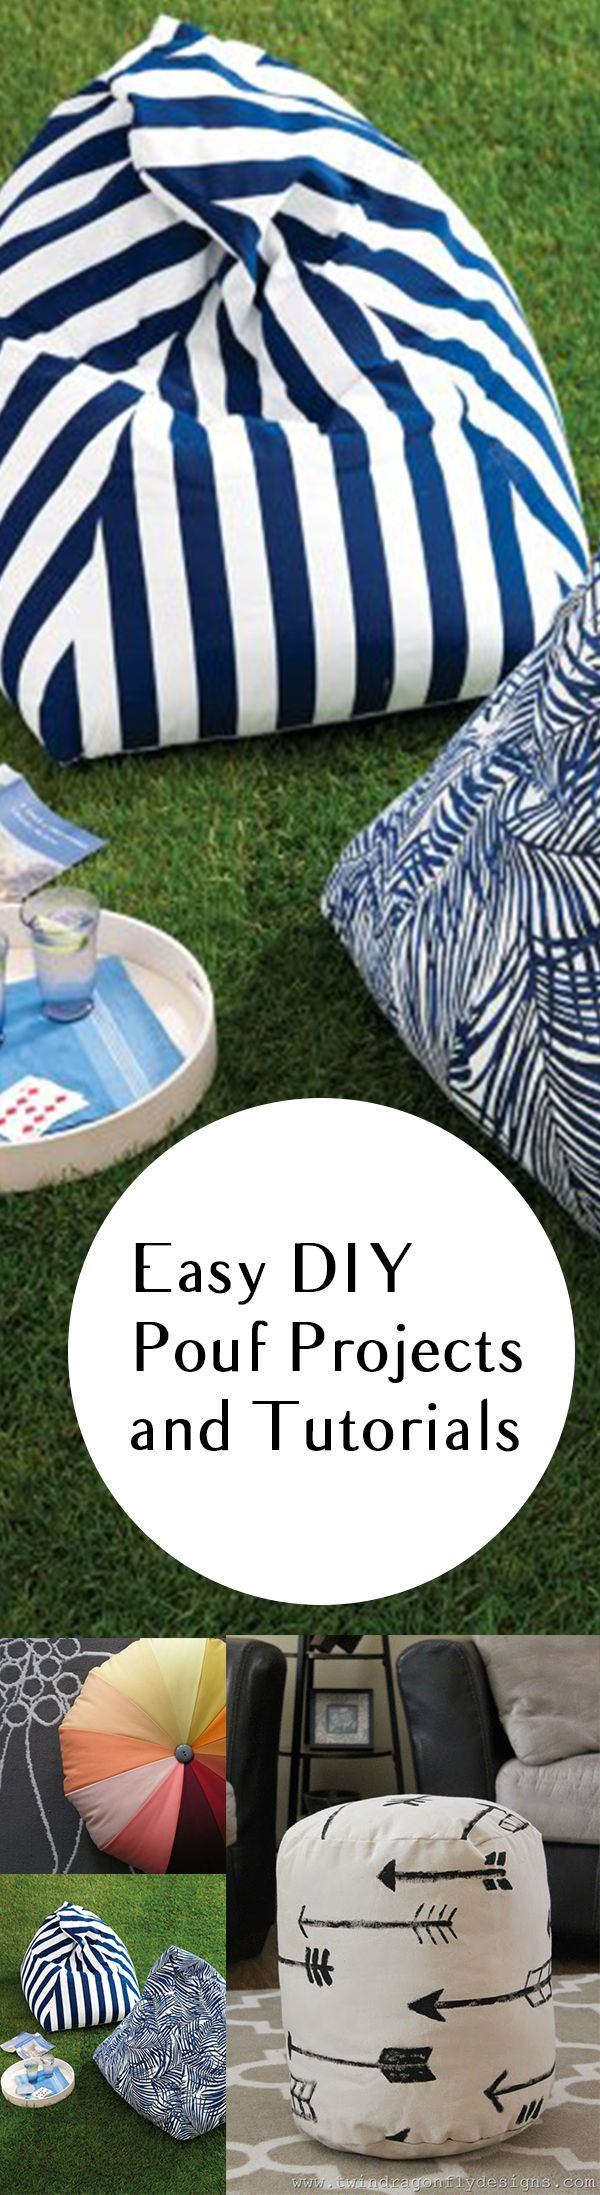 Easy diy pouf projects and tutorials diy pouf tutorials and craft